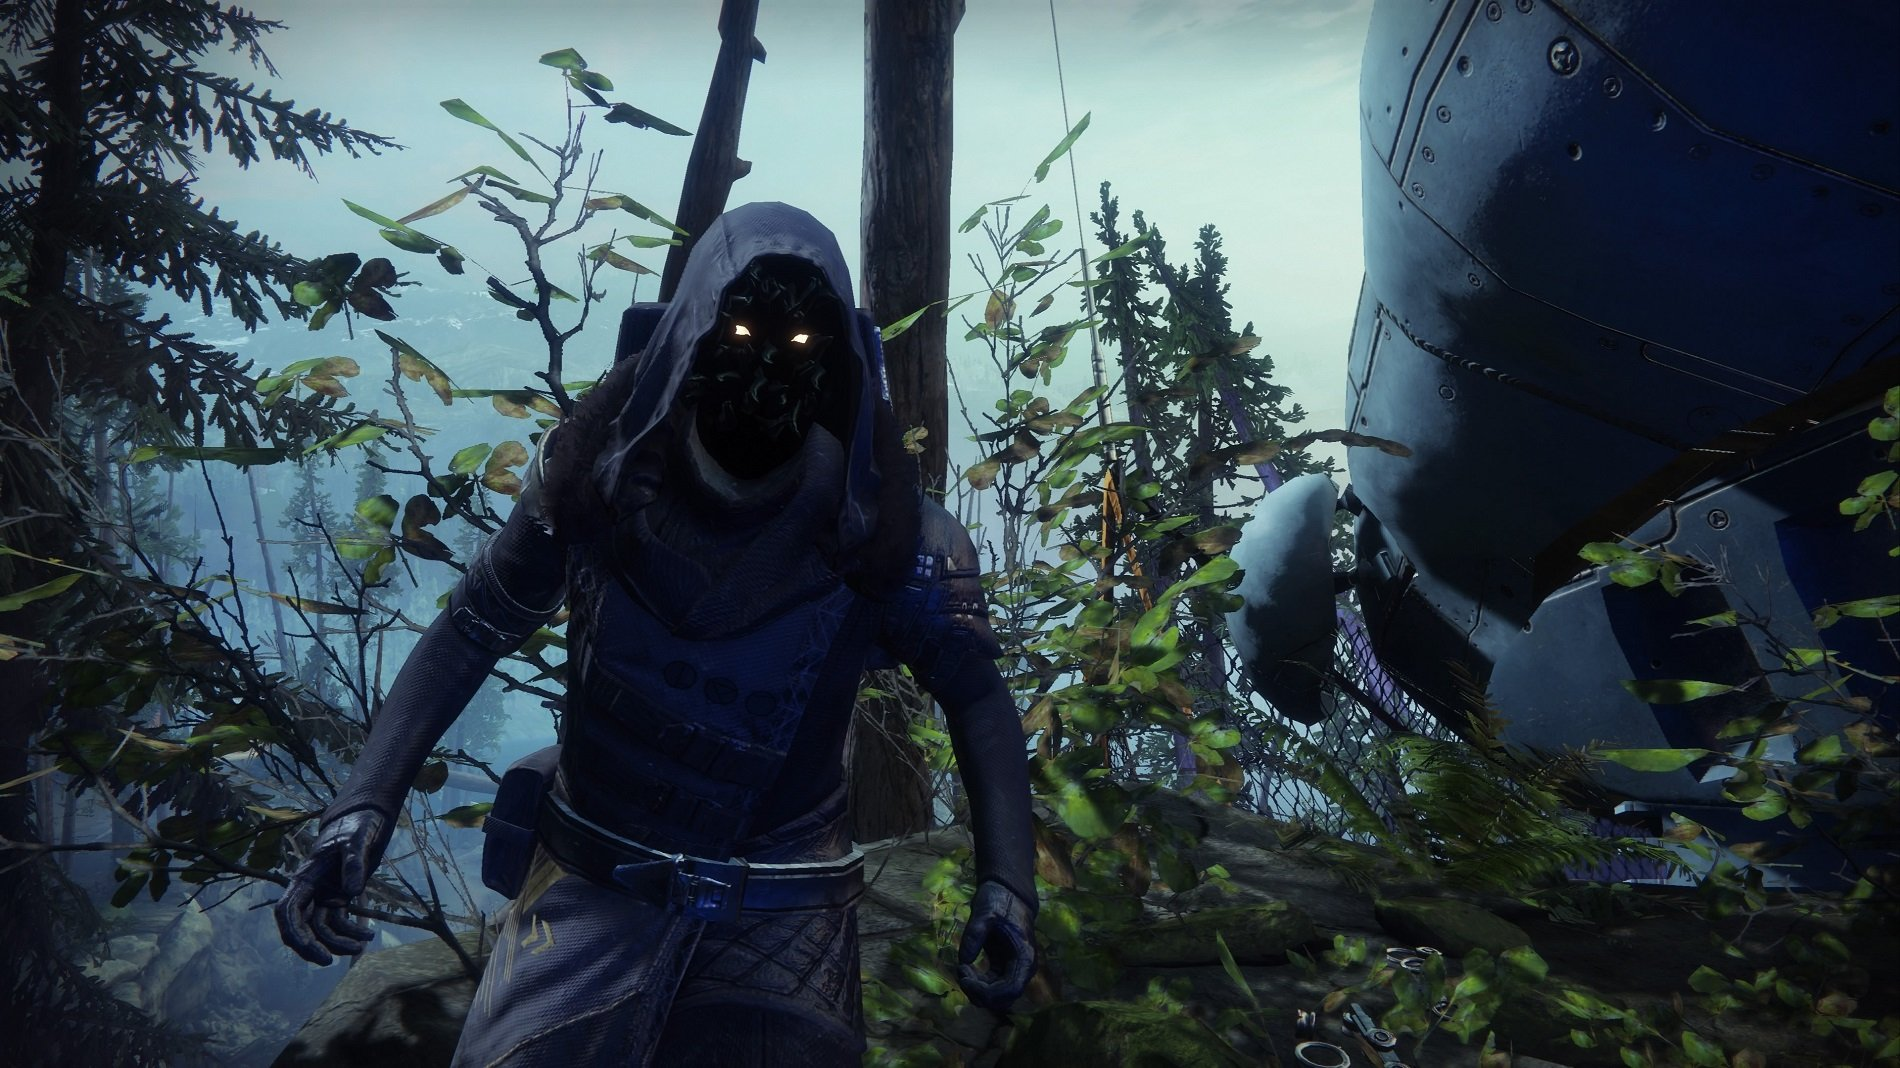 Where to find Xur in Destiny 2 - March 6, 2020